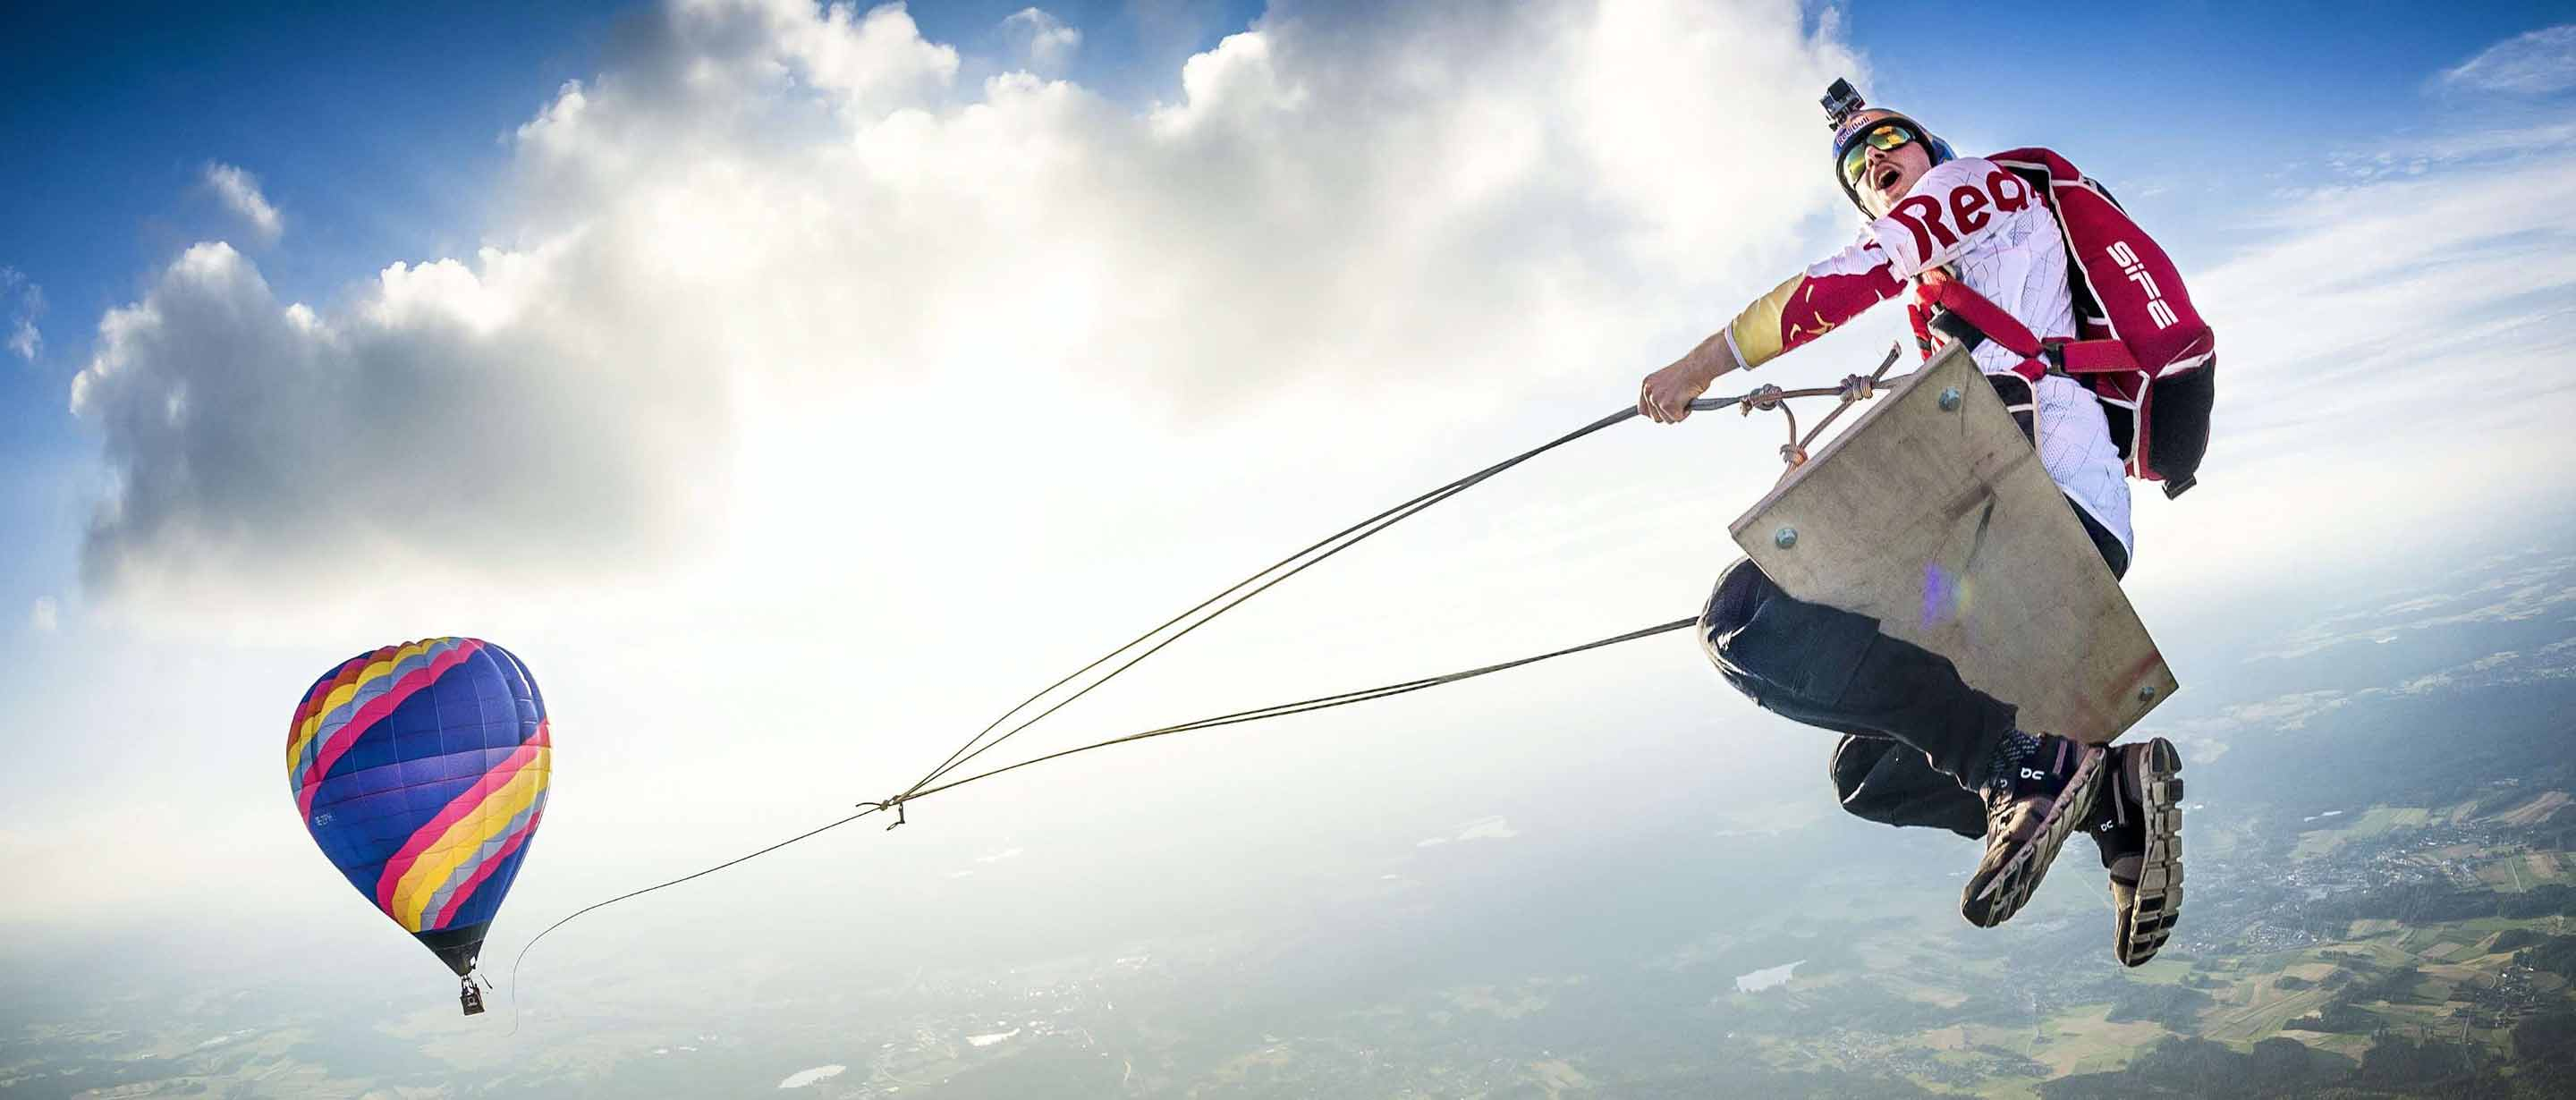 Red Bull Skydive >> Red Bull Skydive Team On Swiss Performance Running Shoes Clothing